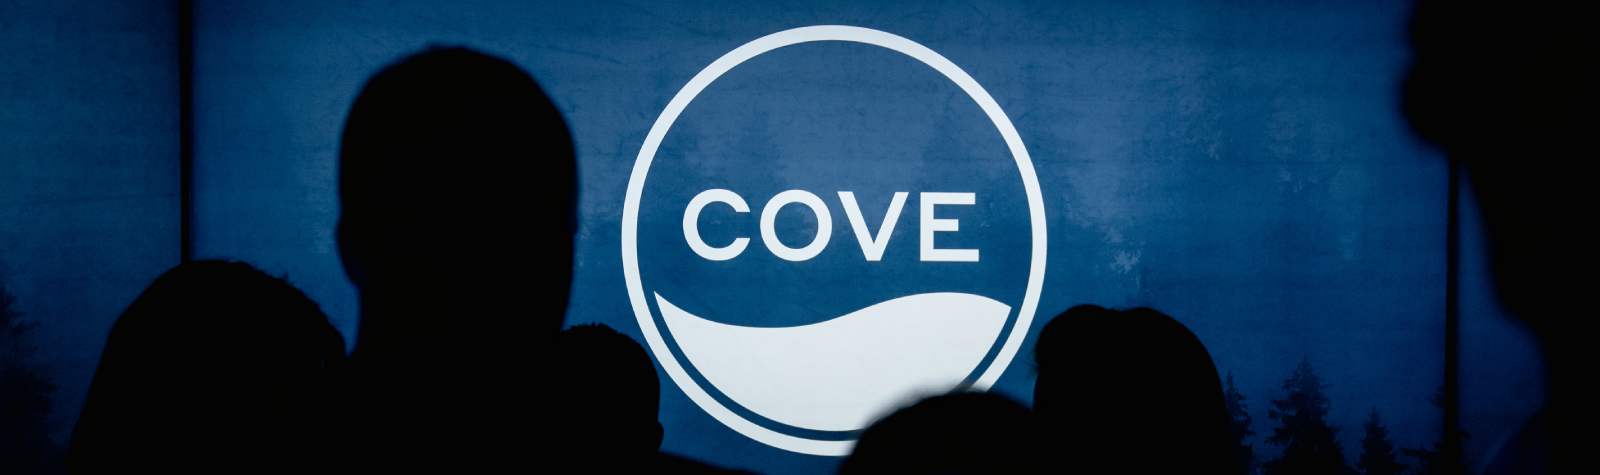 Inside The Cove